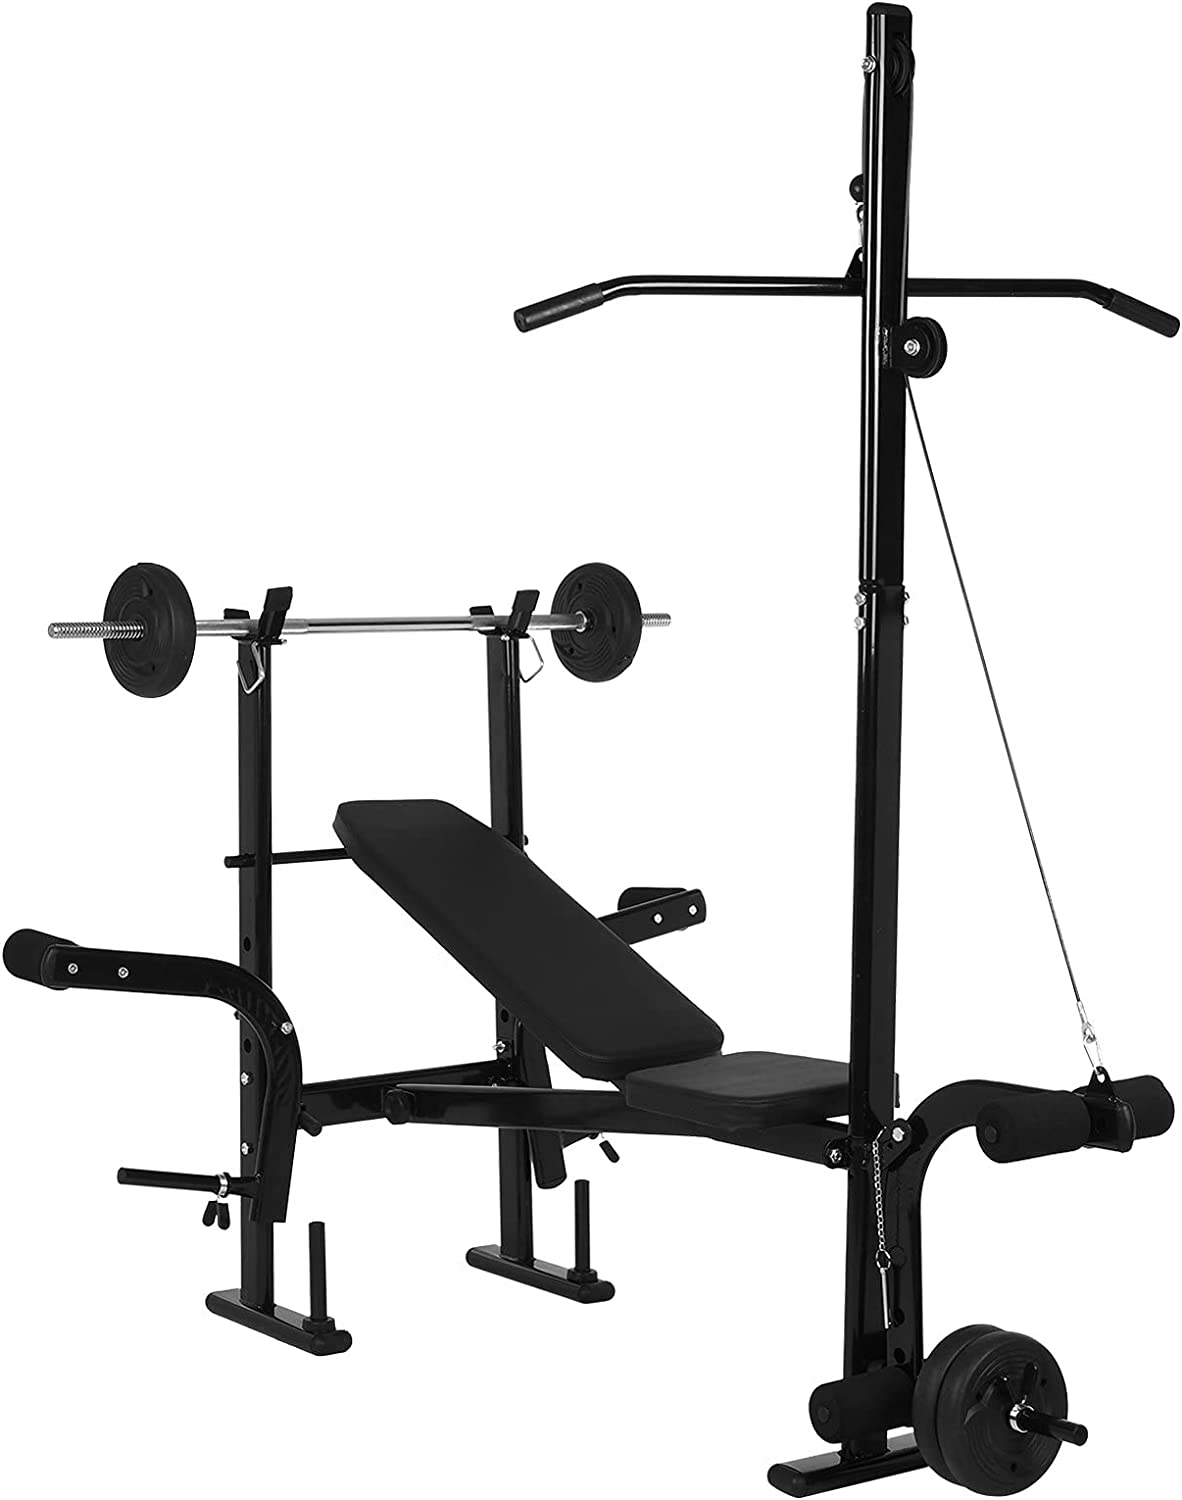 2 In 1 Rack Max 46% OFF Bench Set Lift Adjustable Popular products Weight Fi